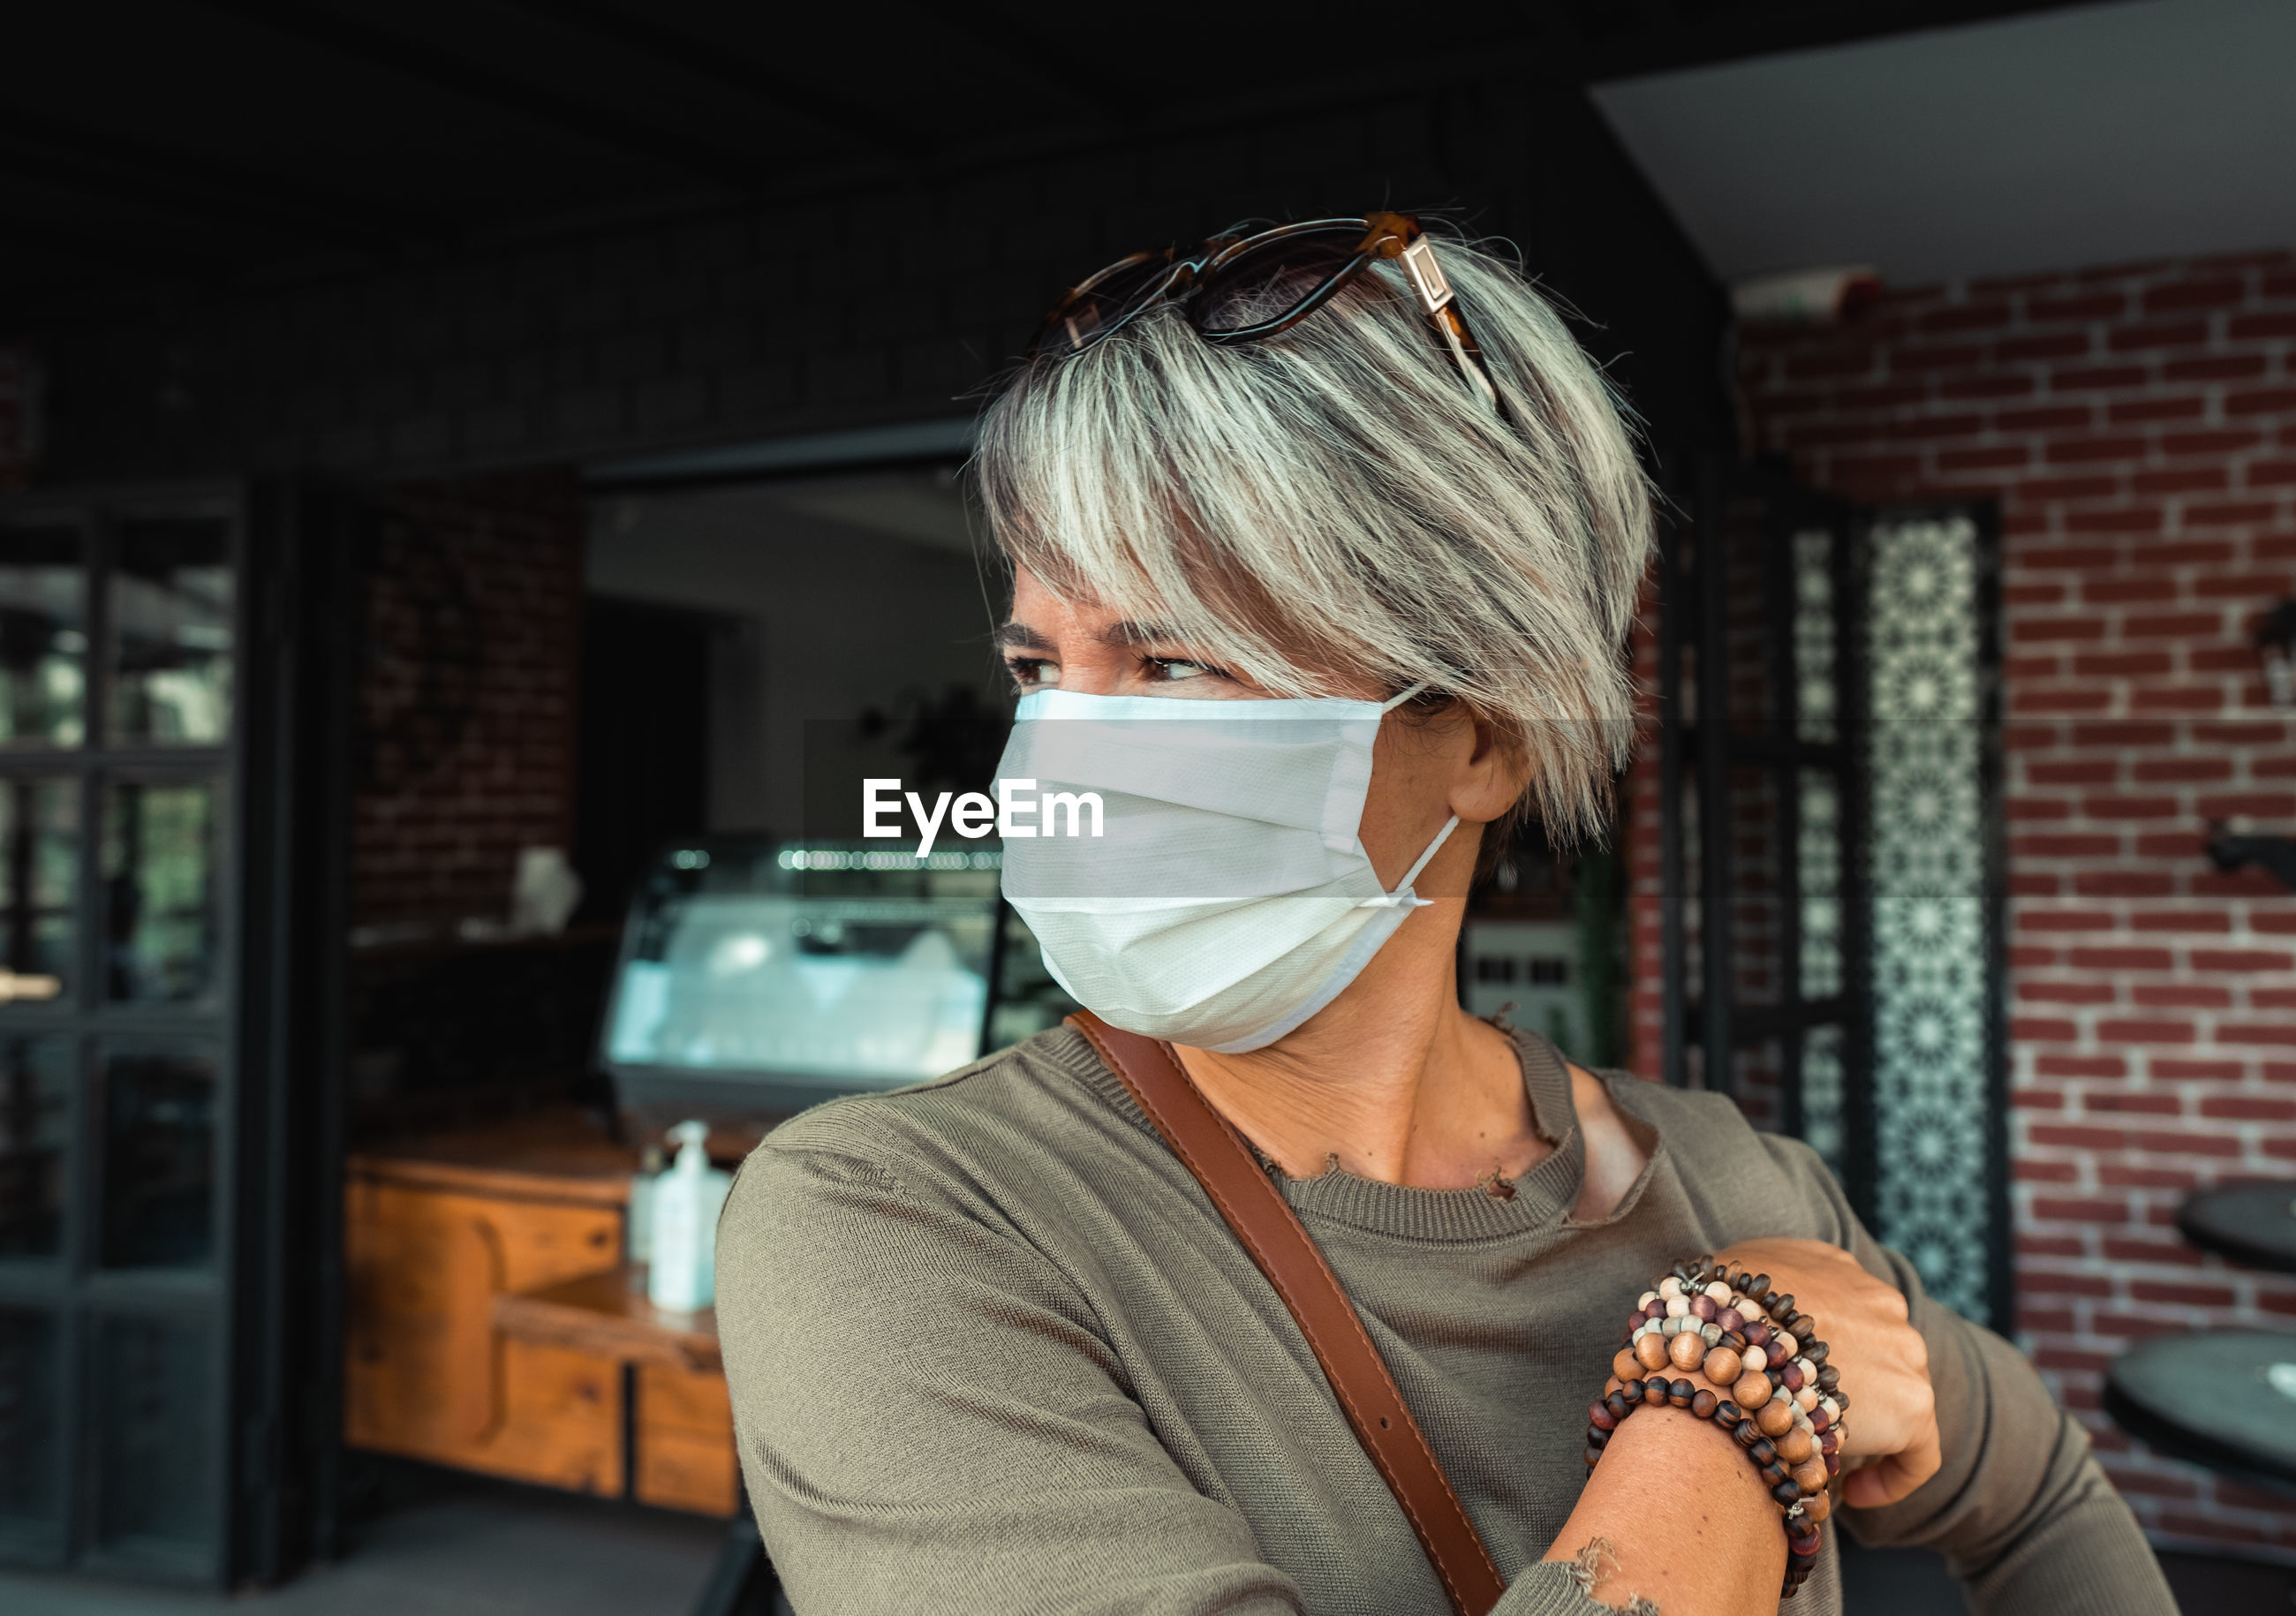 Customer wearing face mask during pandemic time in front of coffee shop.